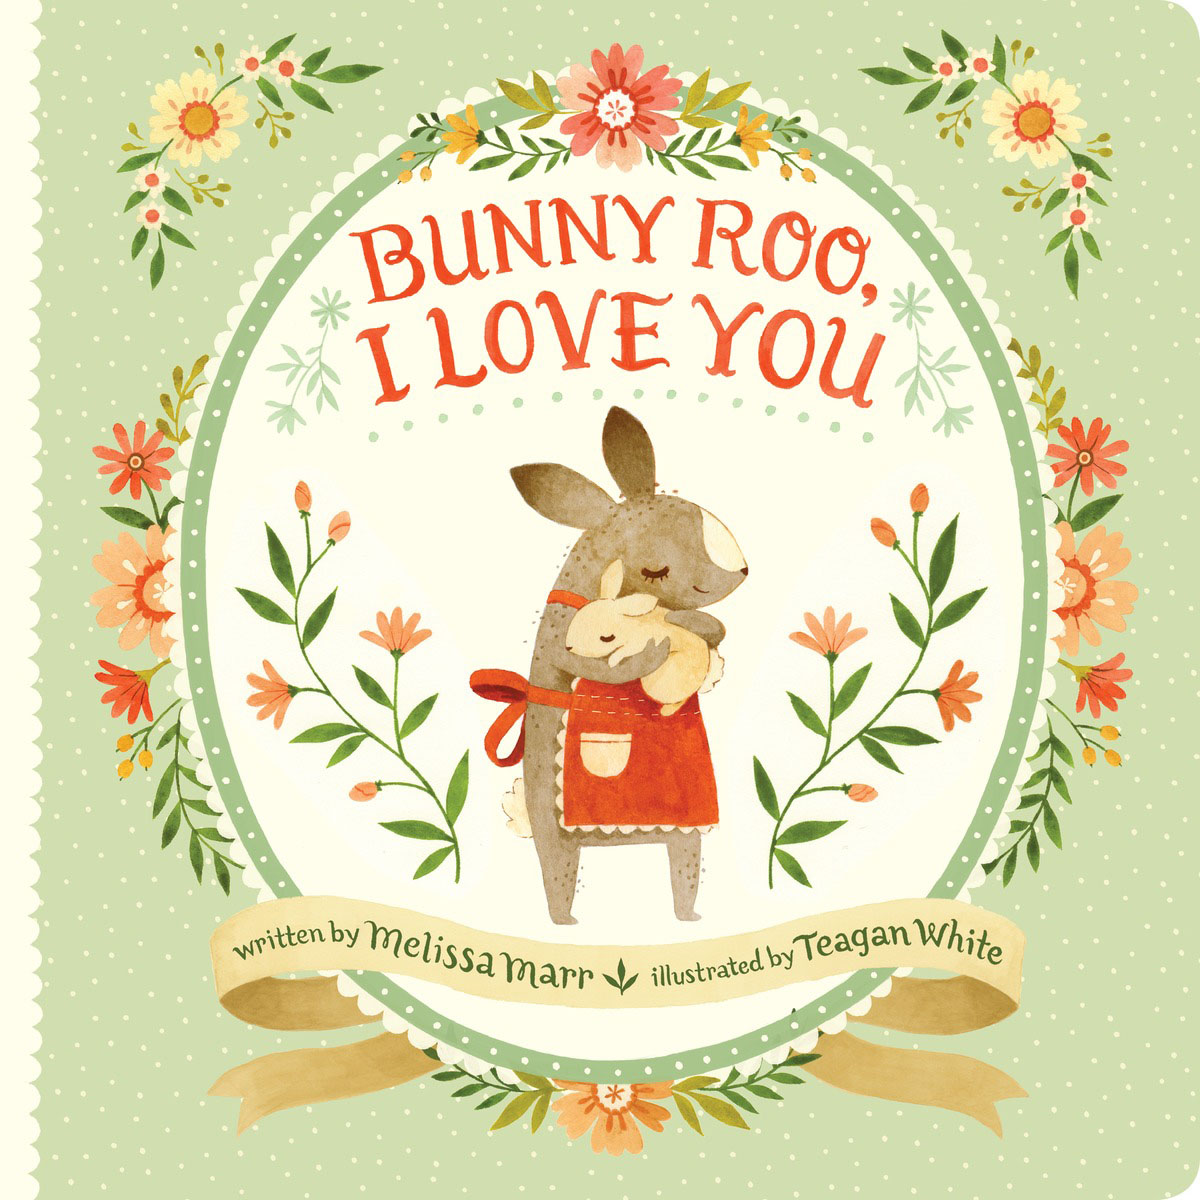 Bunny Roo, I Love You when i found you